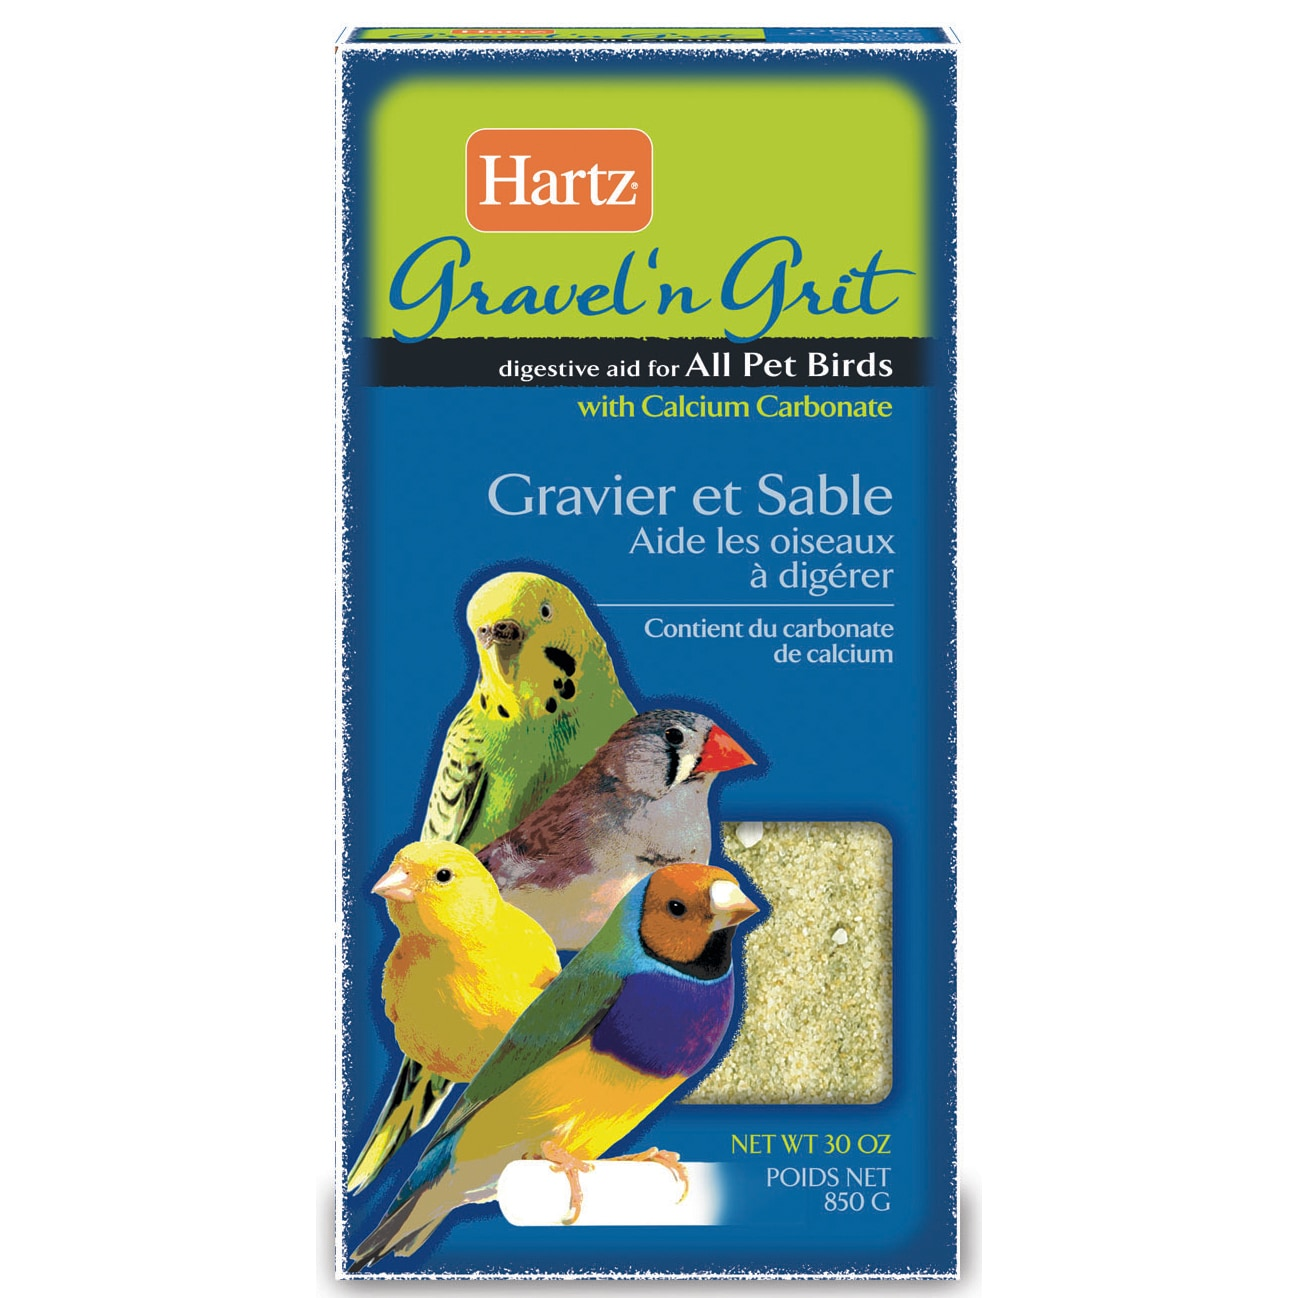 Hartz Gravel'n Grit Pet Bird Digestive Aid (30oz), Grey